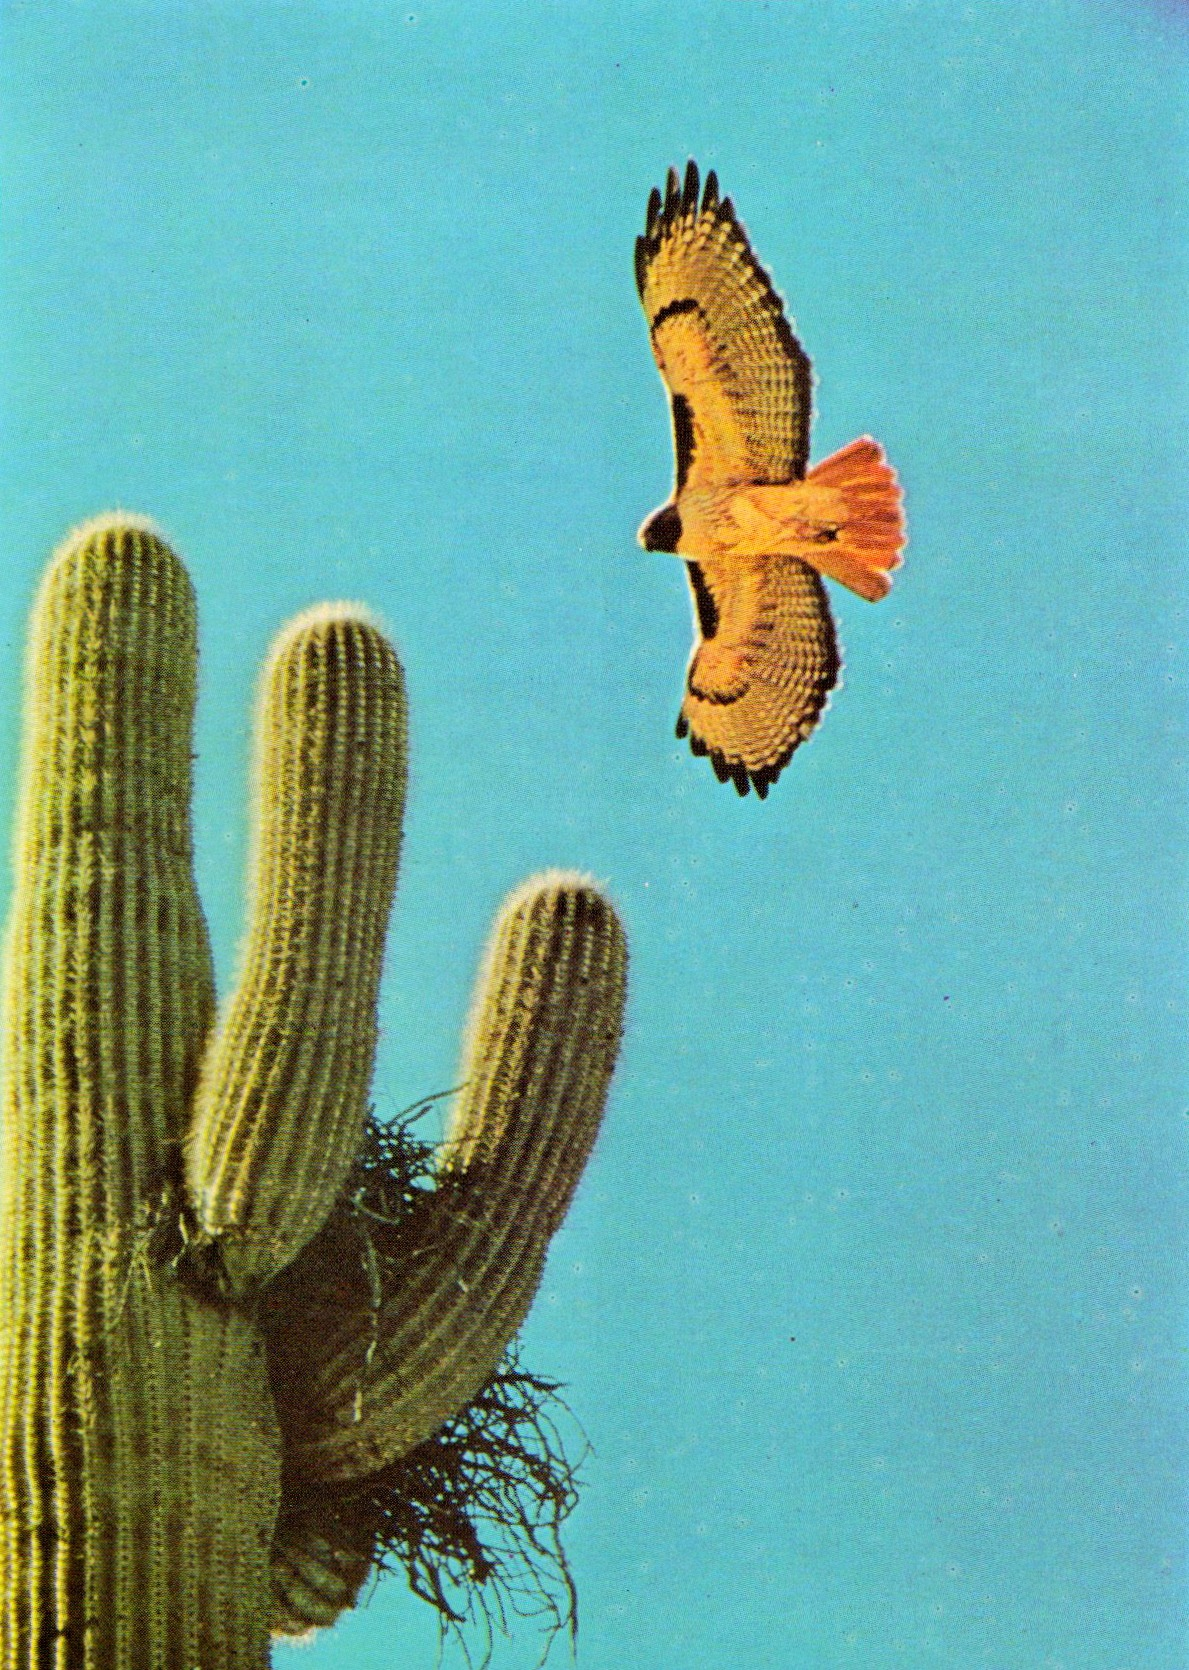 "gretchenjonesnyc: ""The Life of the desert"".  Ann and M. Suton. 1966."